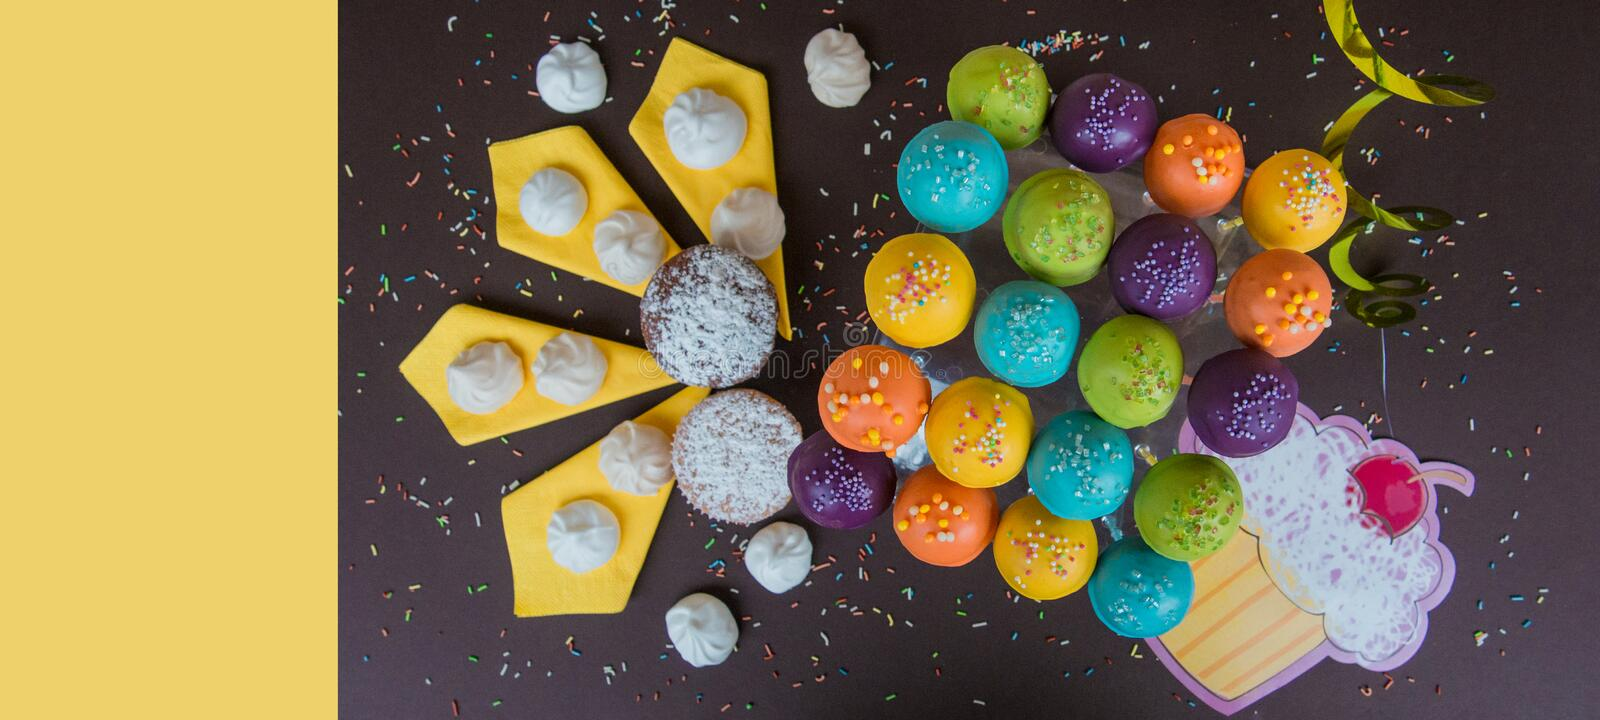 Top view of cake pops on a dark brown background with bright yellow copy space stock image